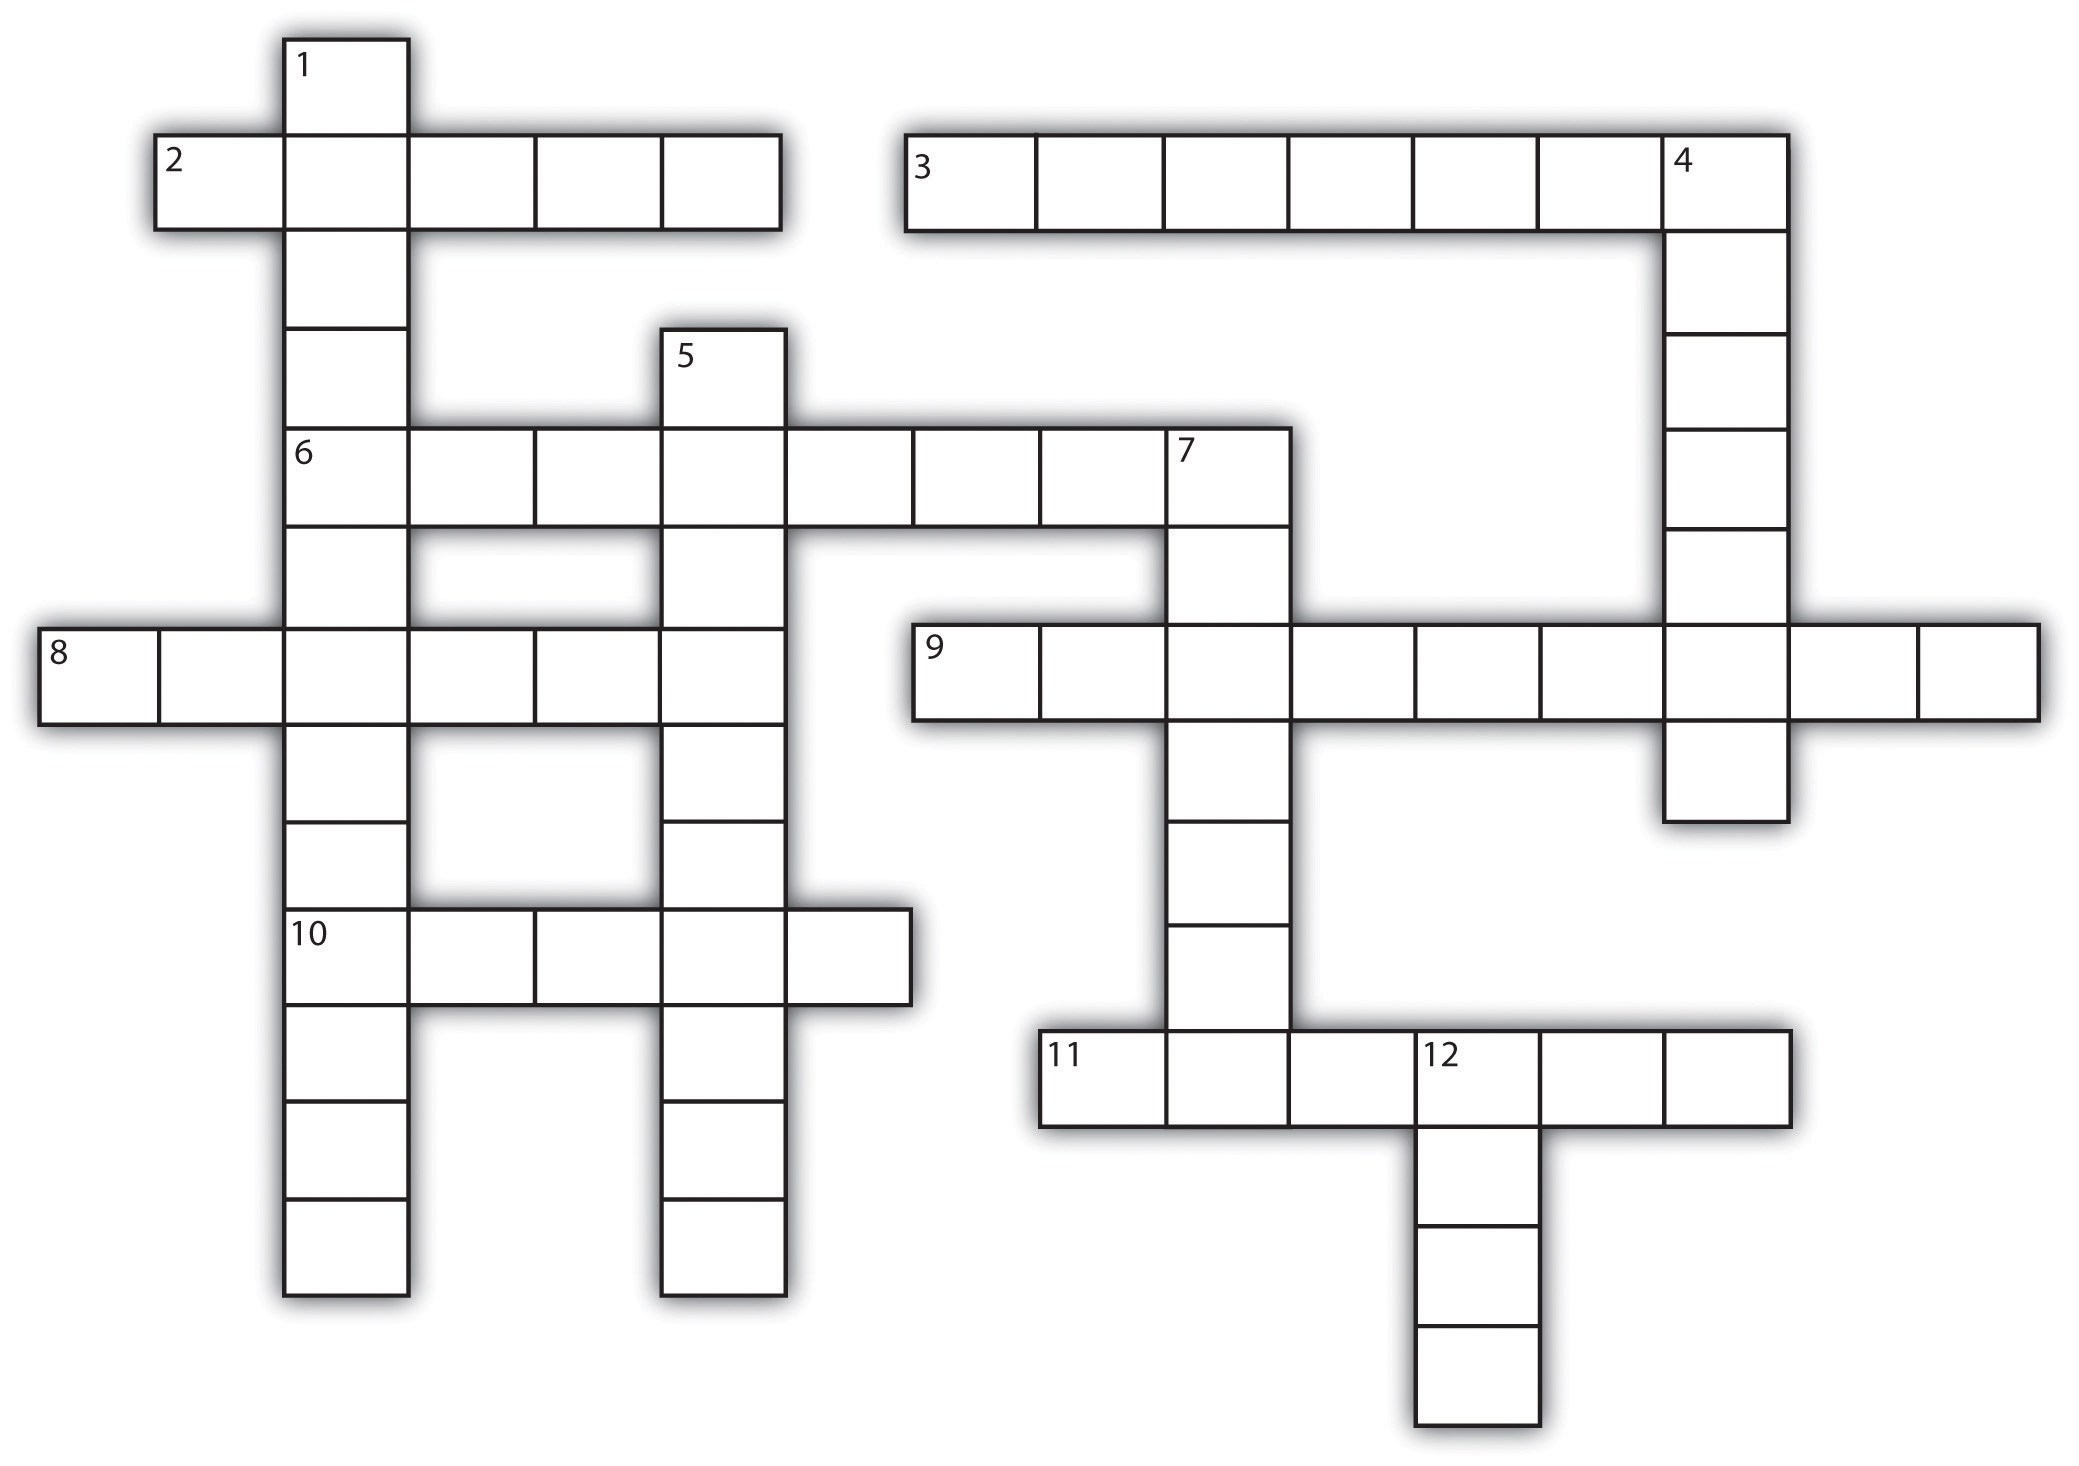 Template For Crossword Puzzle. Crossword Template Daily Dose Of - Printable Blank Crossword Puzzle Grid